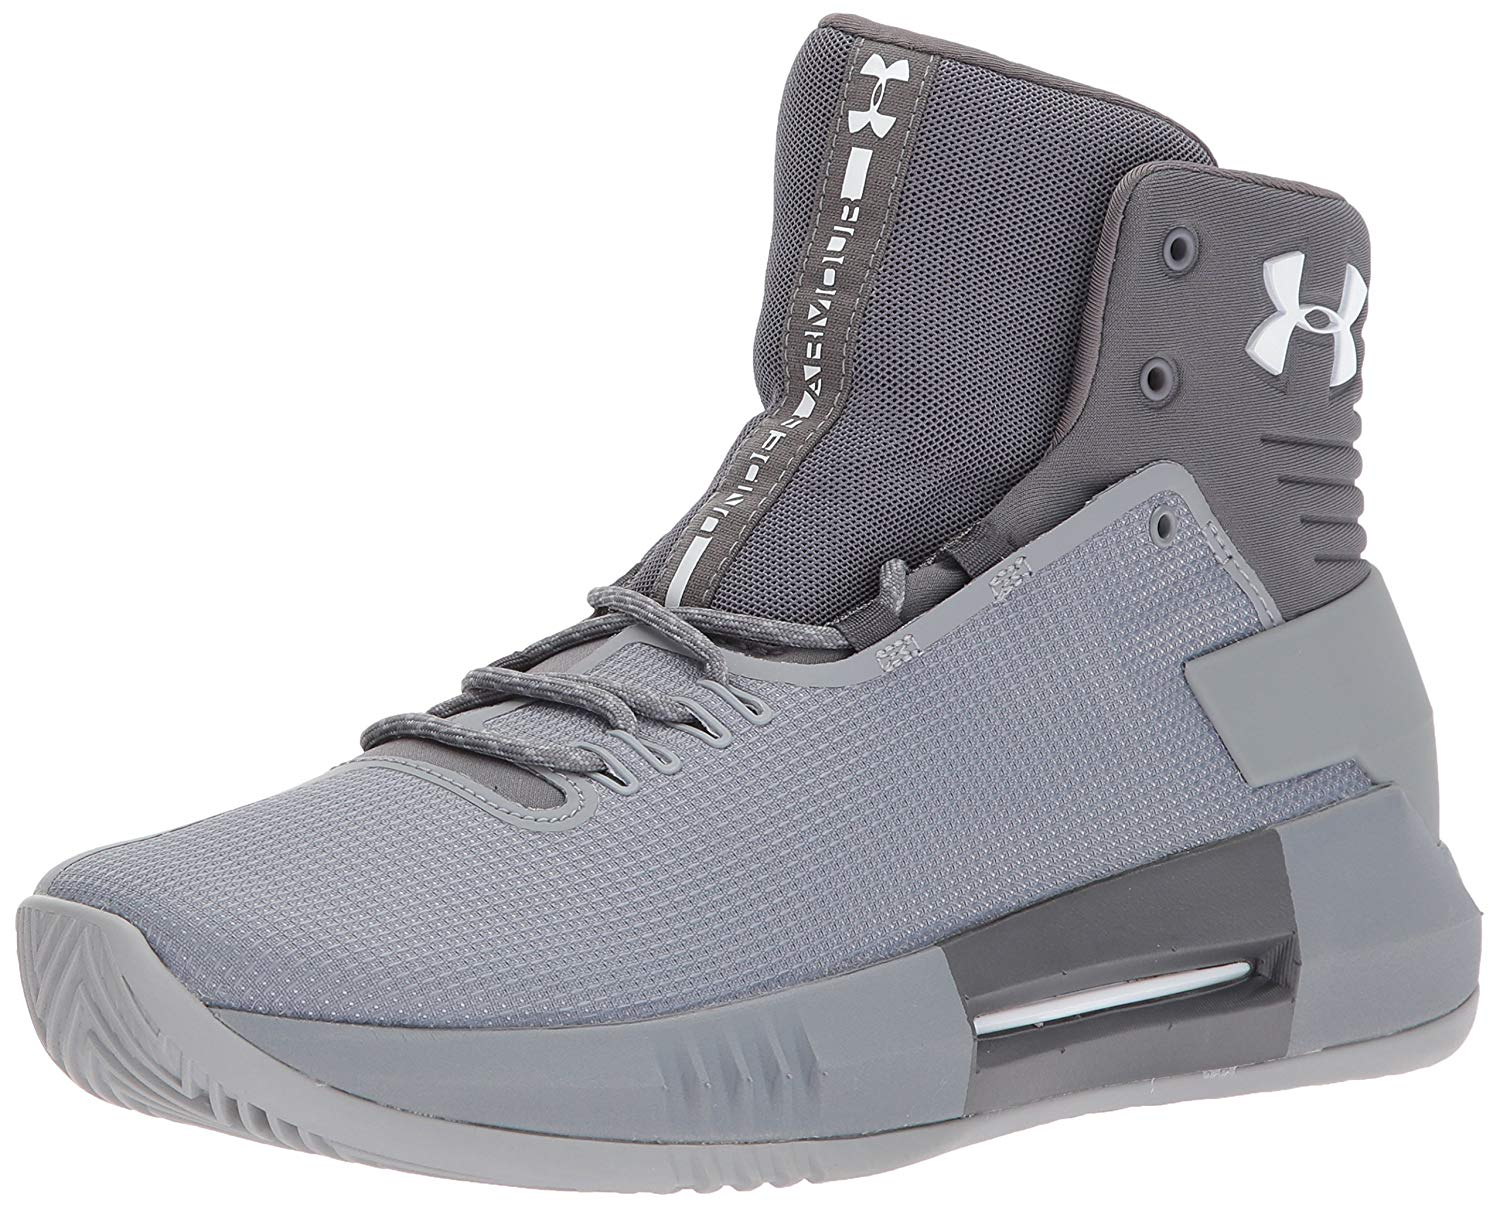 UNDER ARMOUR DRIVE 4 TB MEN'S SNEAKER 1303010-106